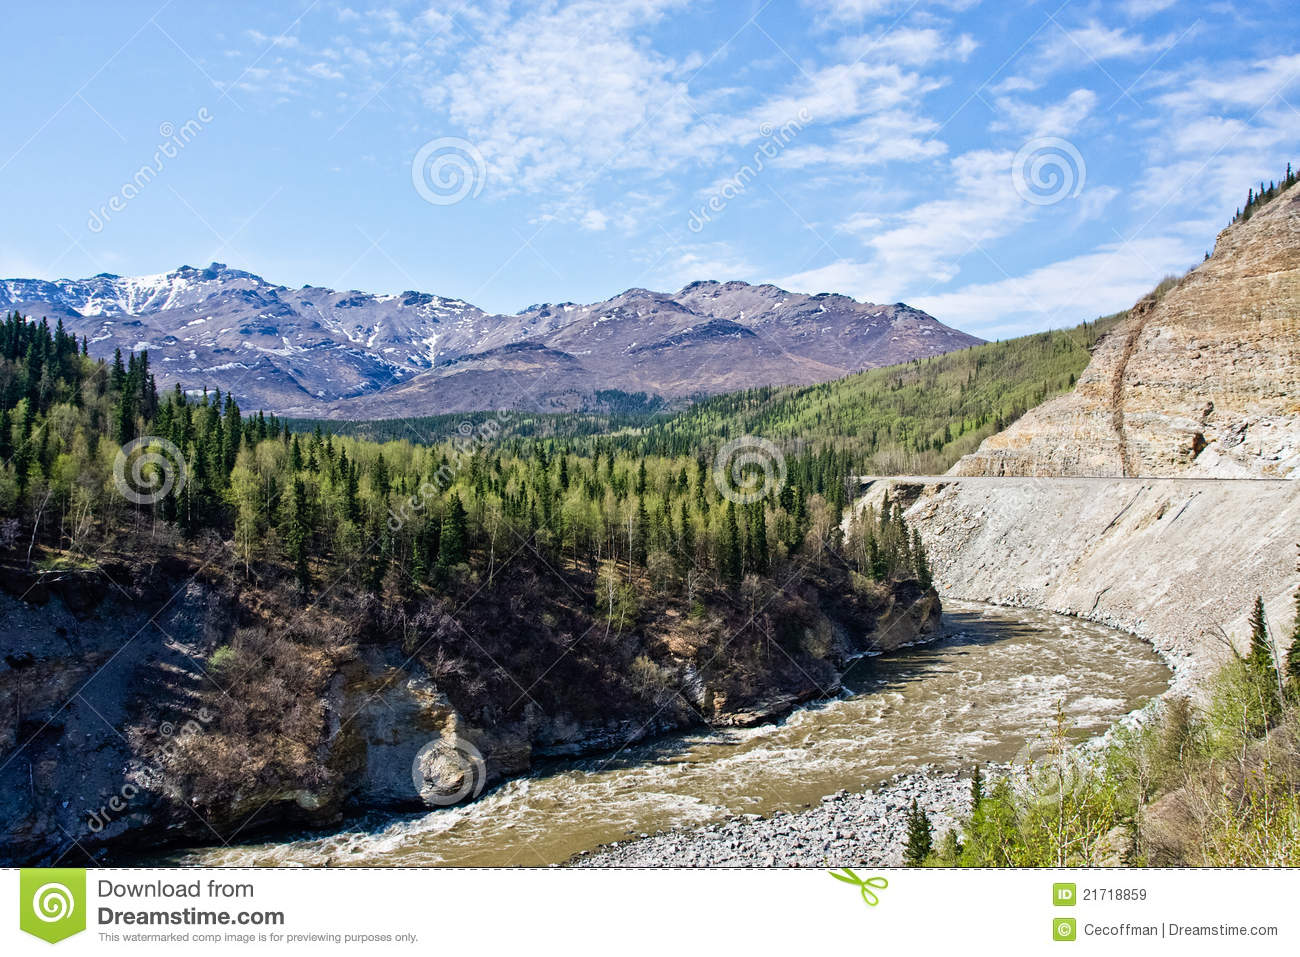 Mountains And Rivers Of Interior Alaska Stock Image   Image of     Download comp